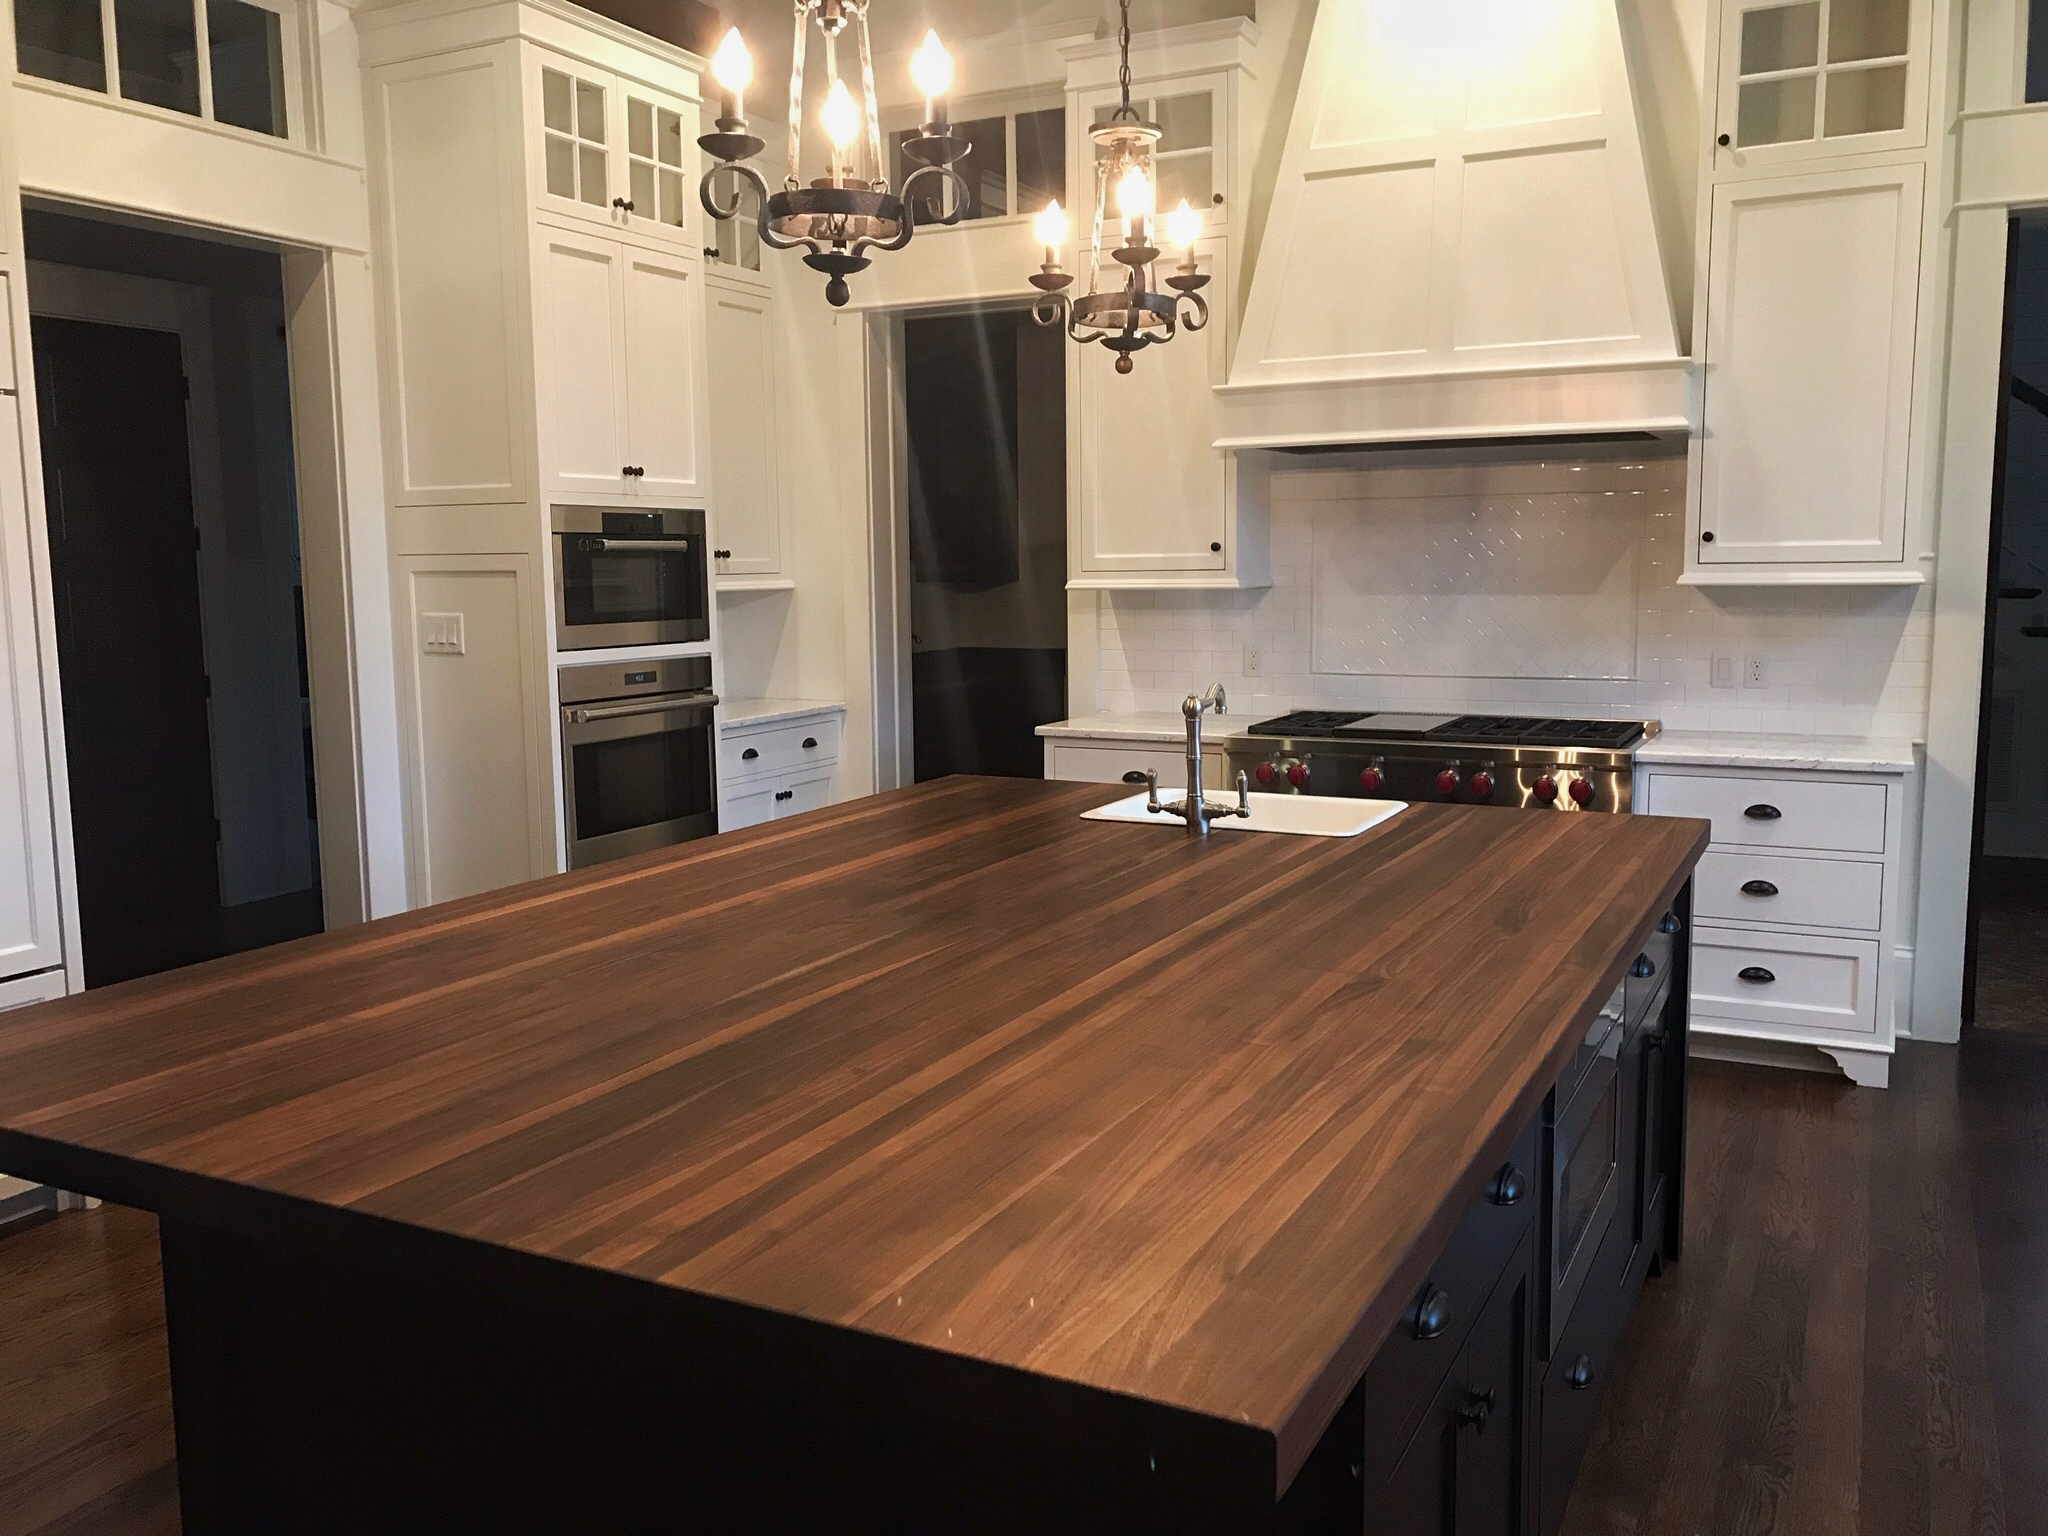 Tung Oil For Butcher Block Countertops Butcher Block Countertop Custom Design Wood Counters